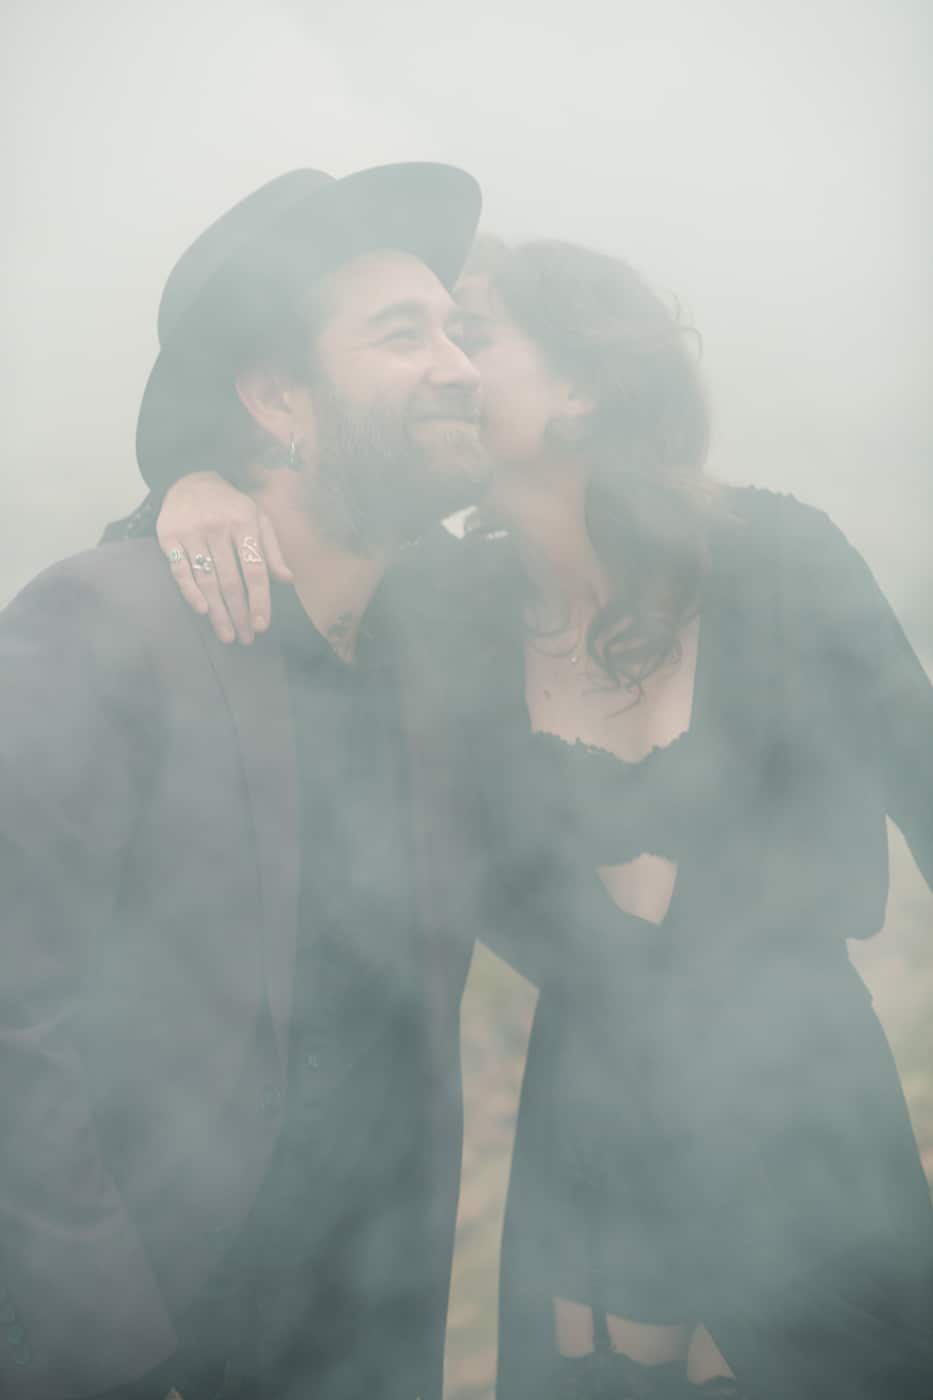 copule kisses with smoke bomb going off